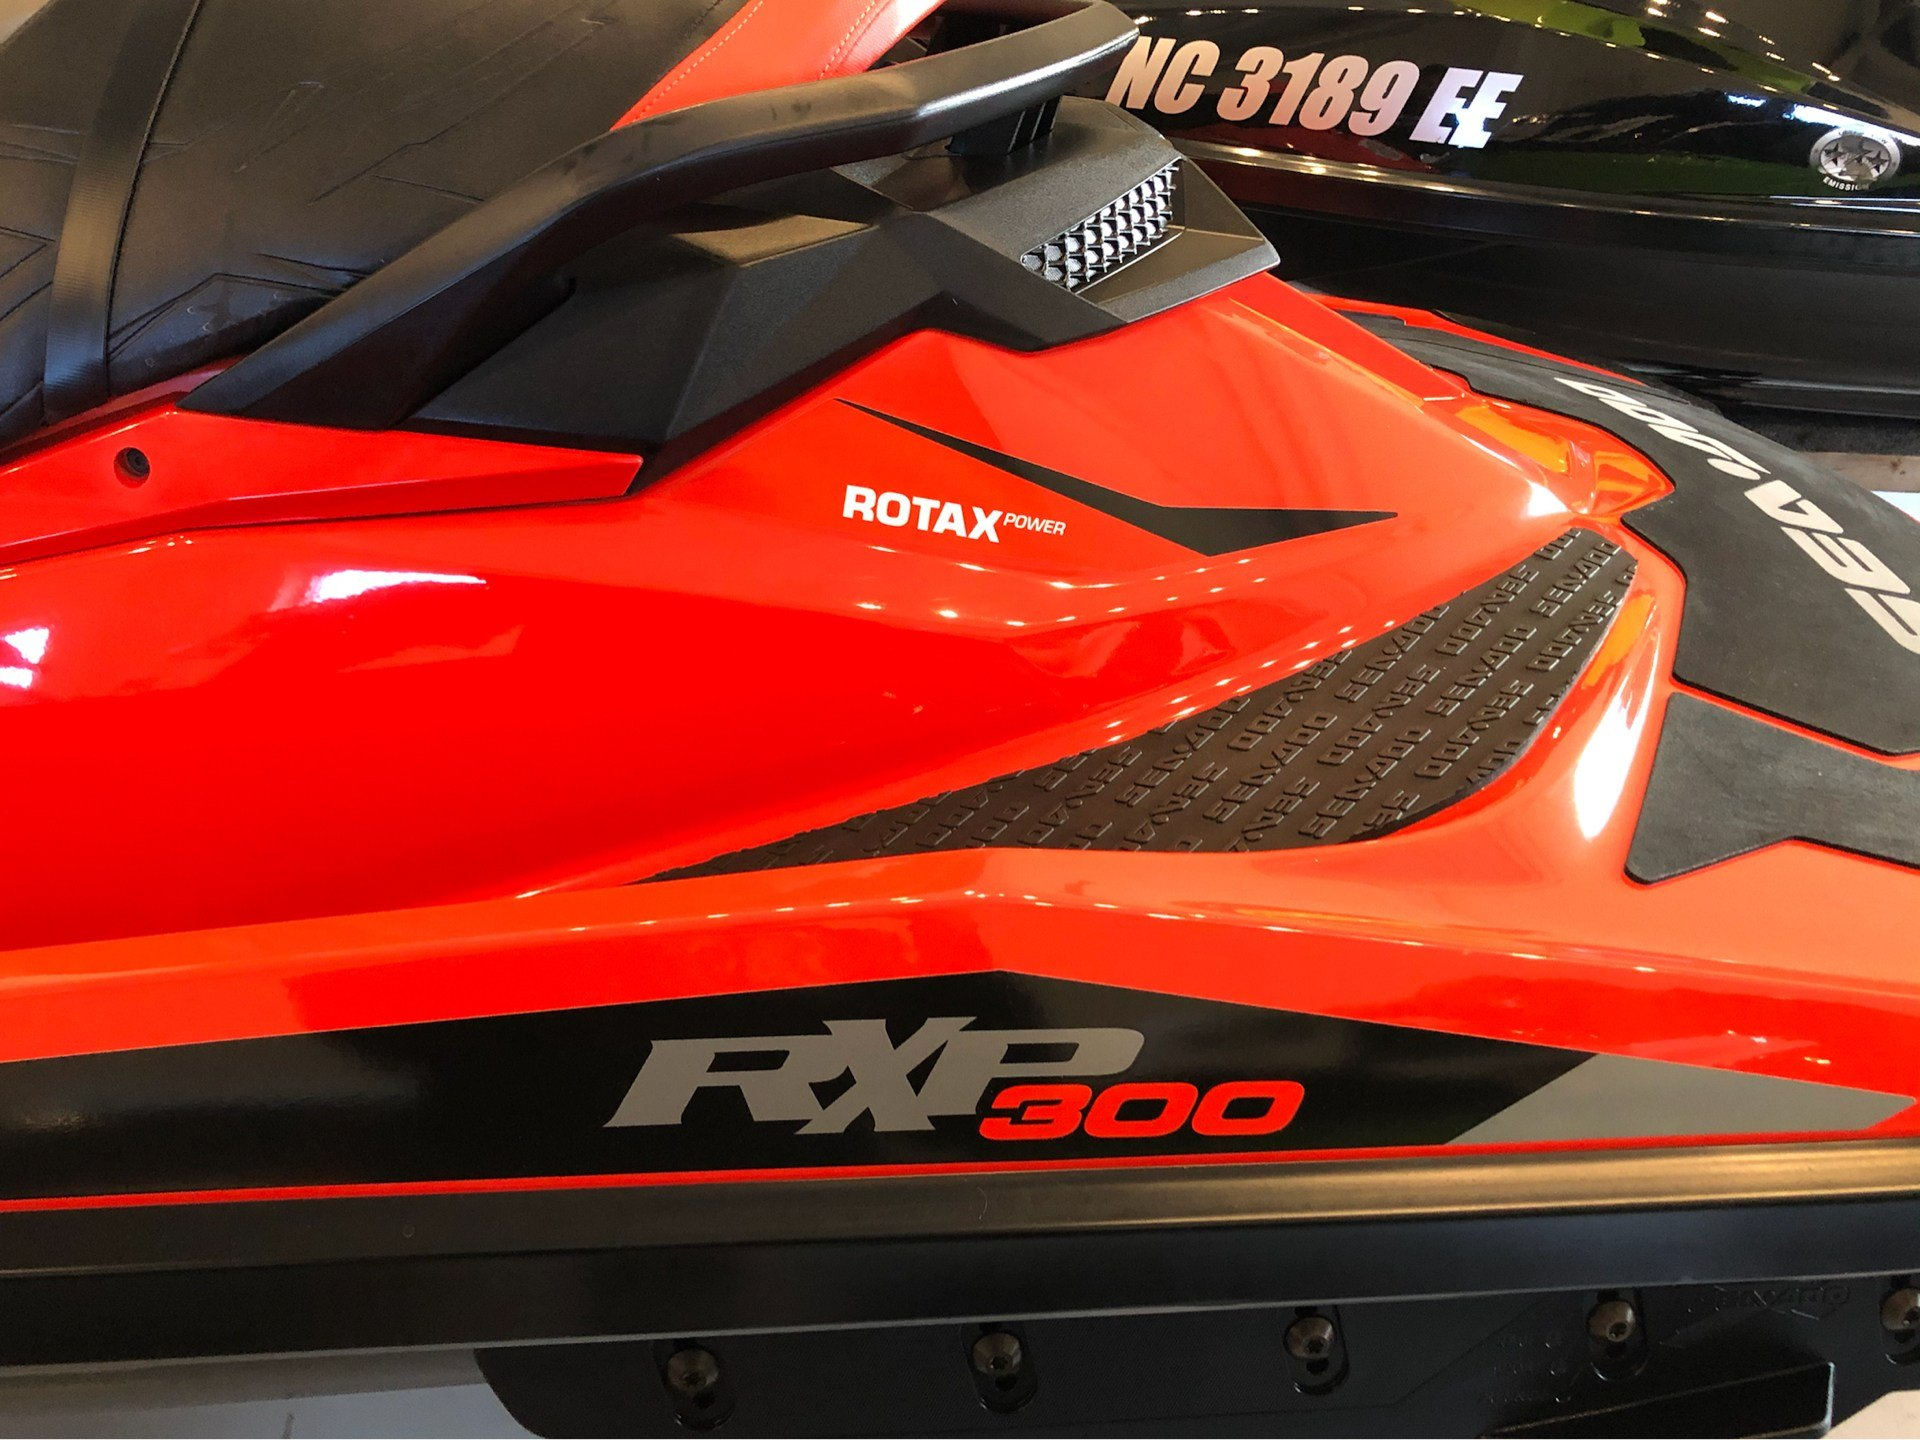 2017 Sea-Doo RXP-X 300 in Mooresville, North Carolina - Photo 3